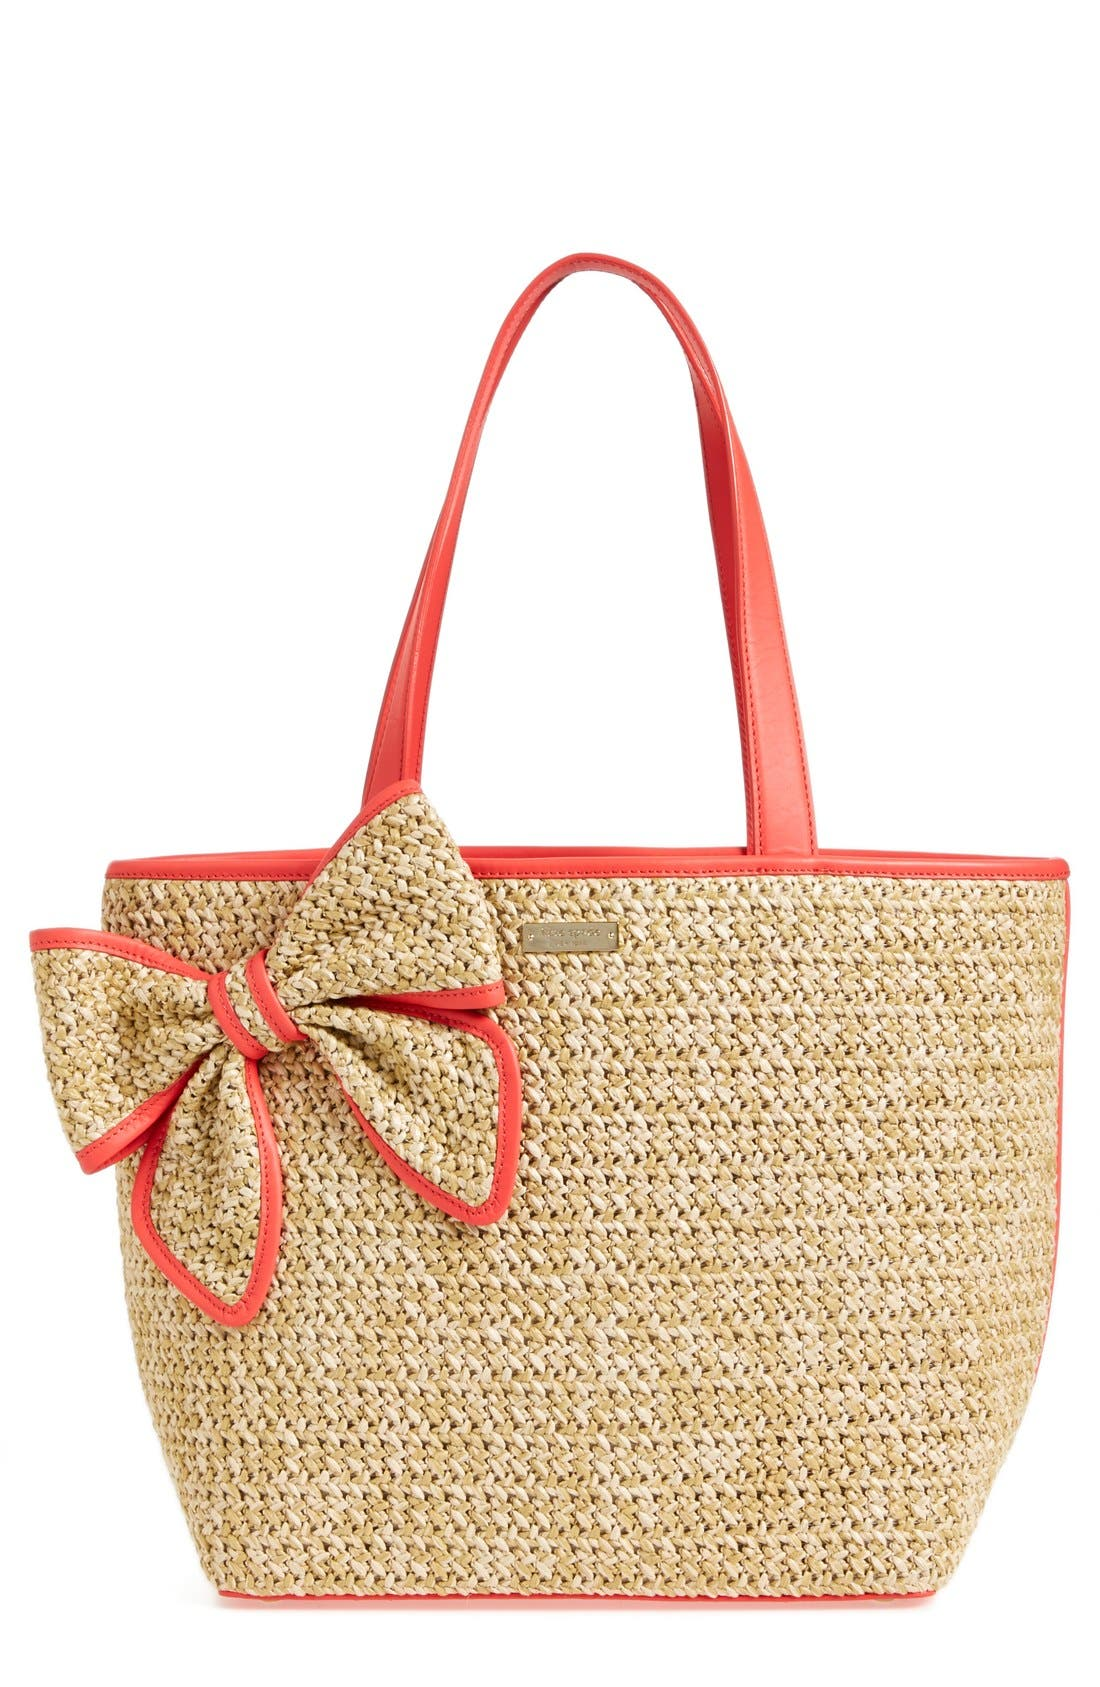 Alternate Image 1 Selected - kate spade 'belle place' straw tote